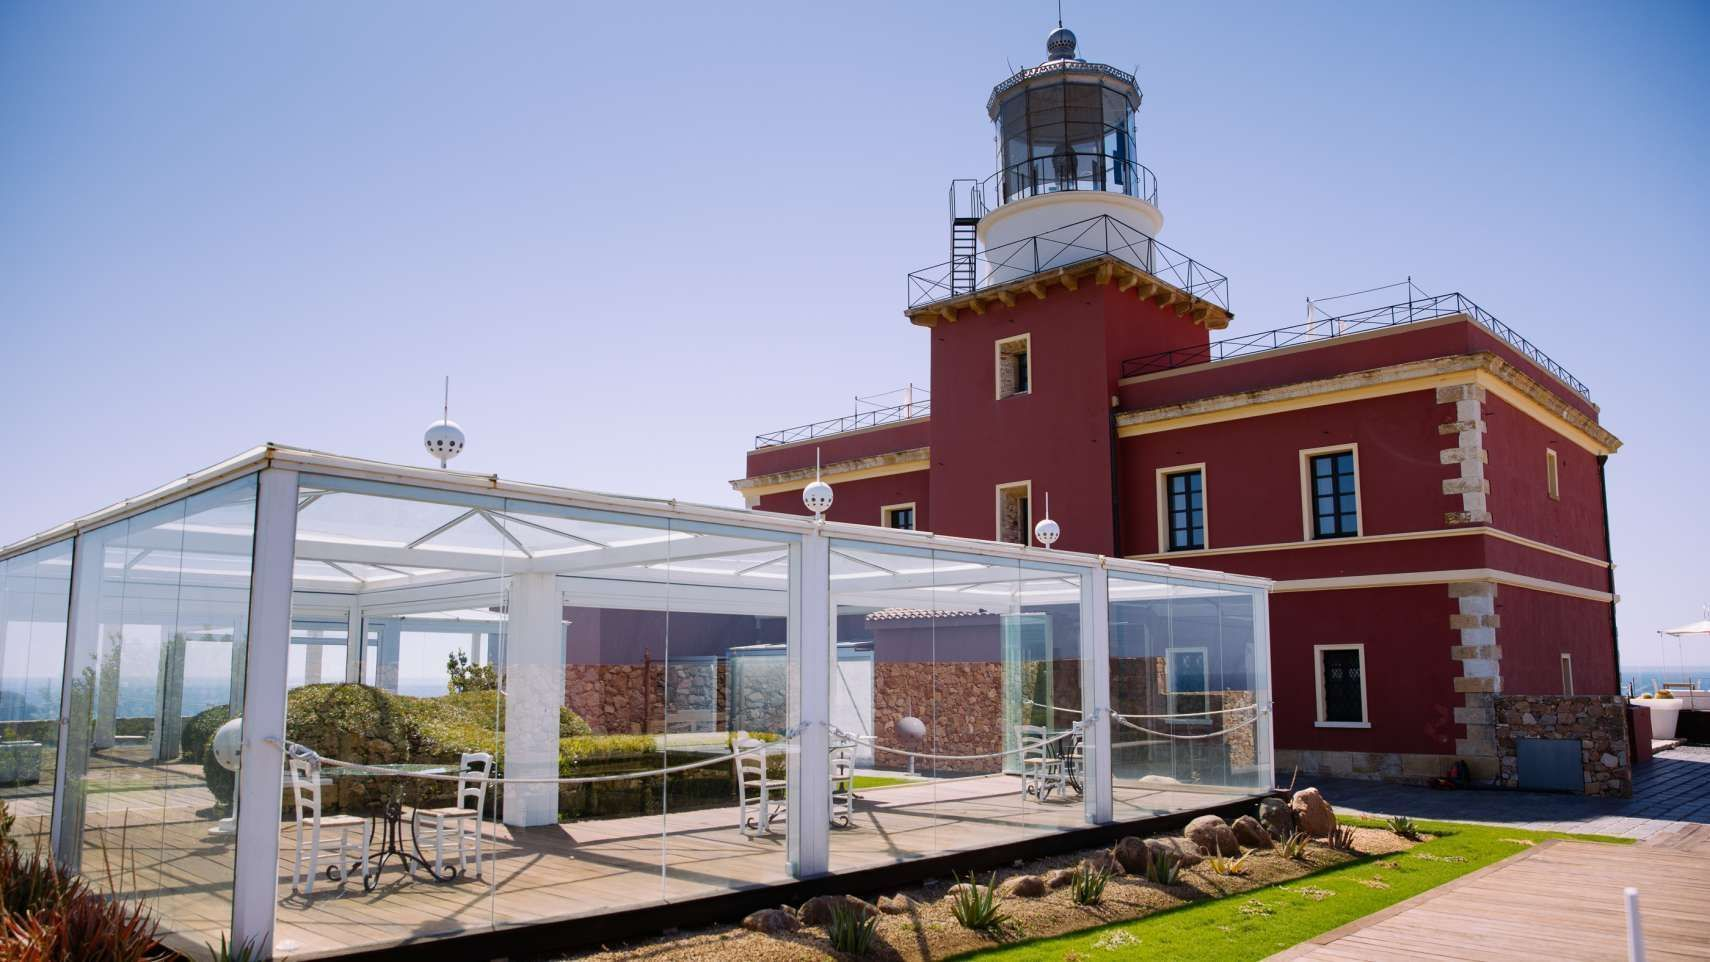 The Faro Capo-Spartivento: a very exclusive hotel in southern Sardinia. Six rooms set in a renovated lighthouse